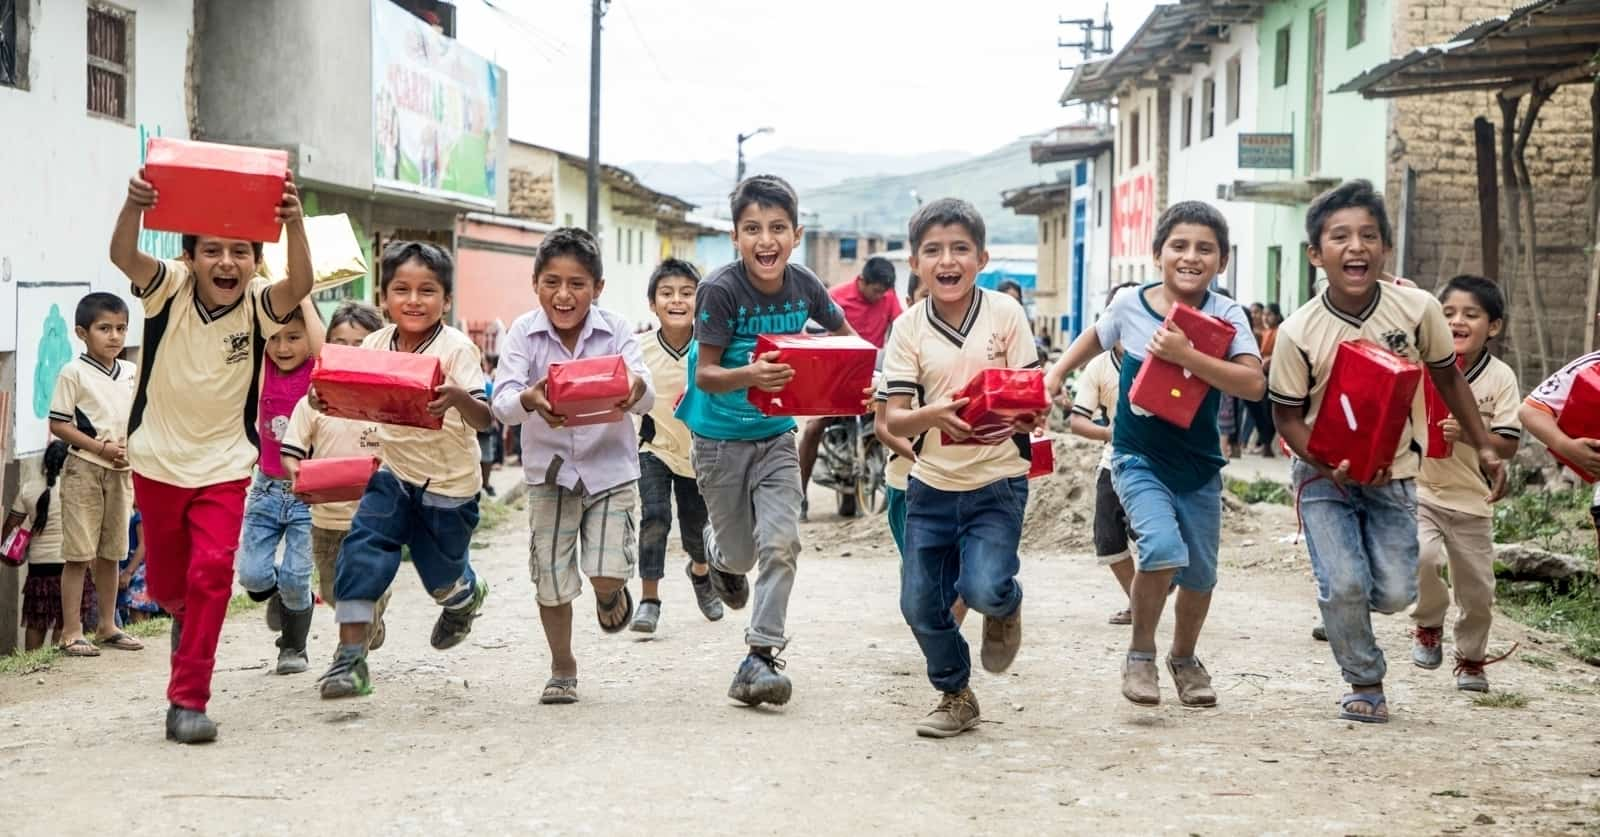 What Gift Does the Child You Sponsor Get at Christmas?